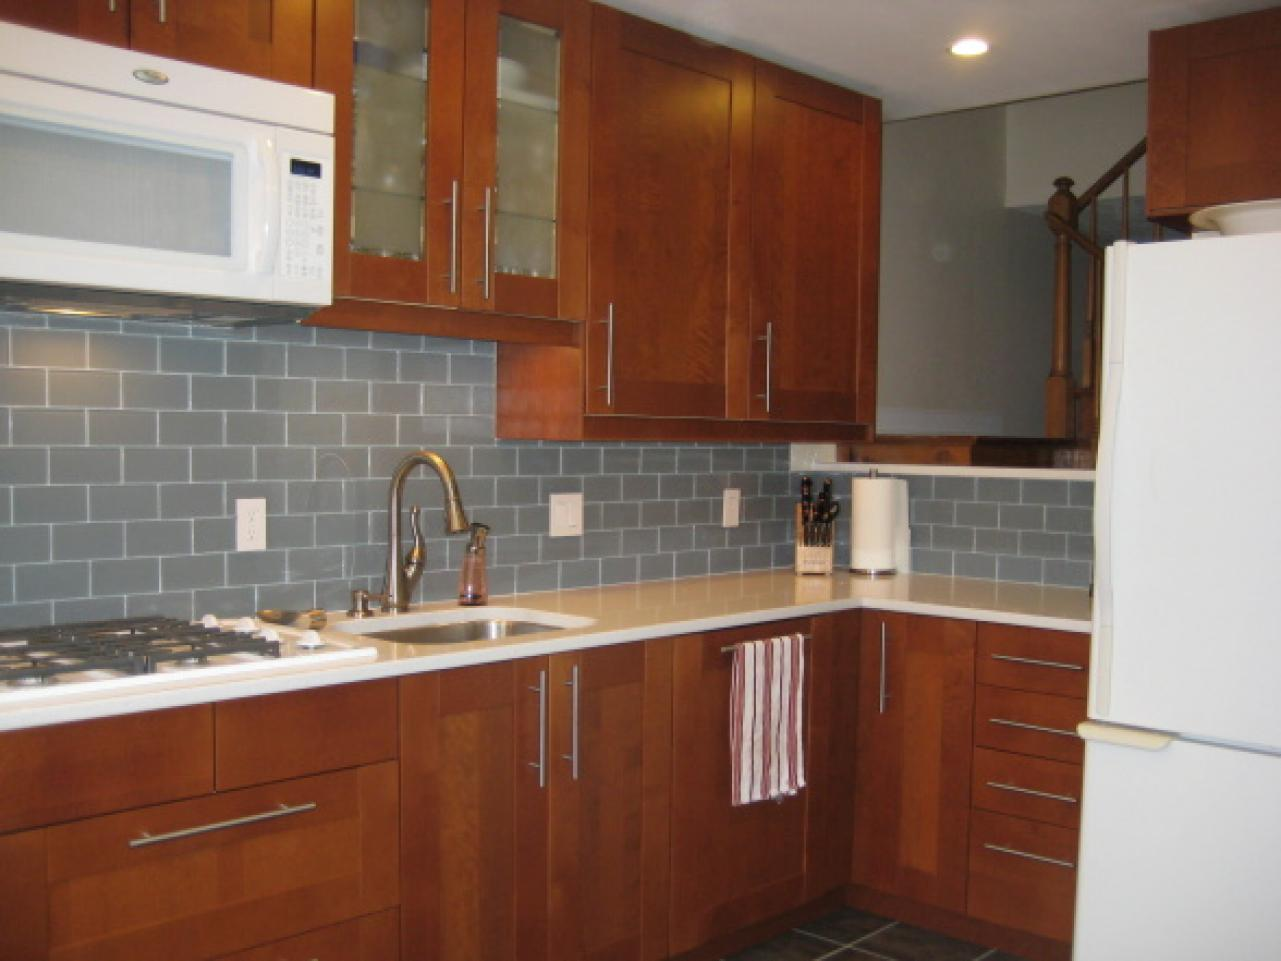 Kitchen Countertop Options Diy : do it yourself kitchen remodel wide view of kitchen with tiled ...